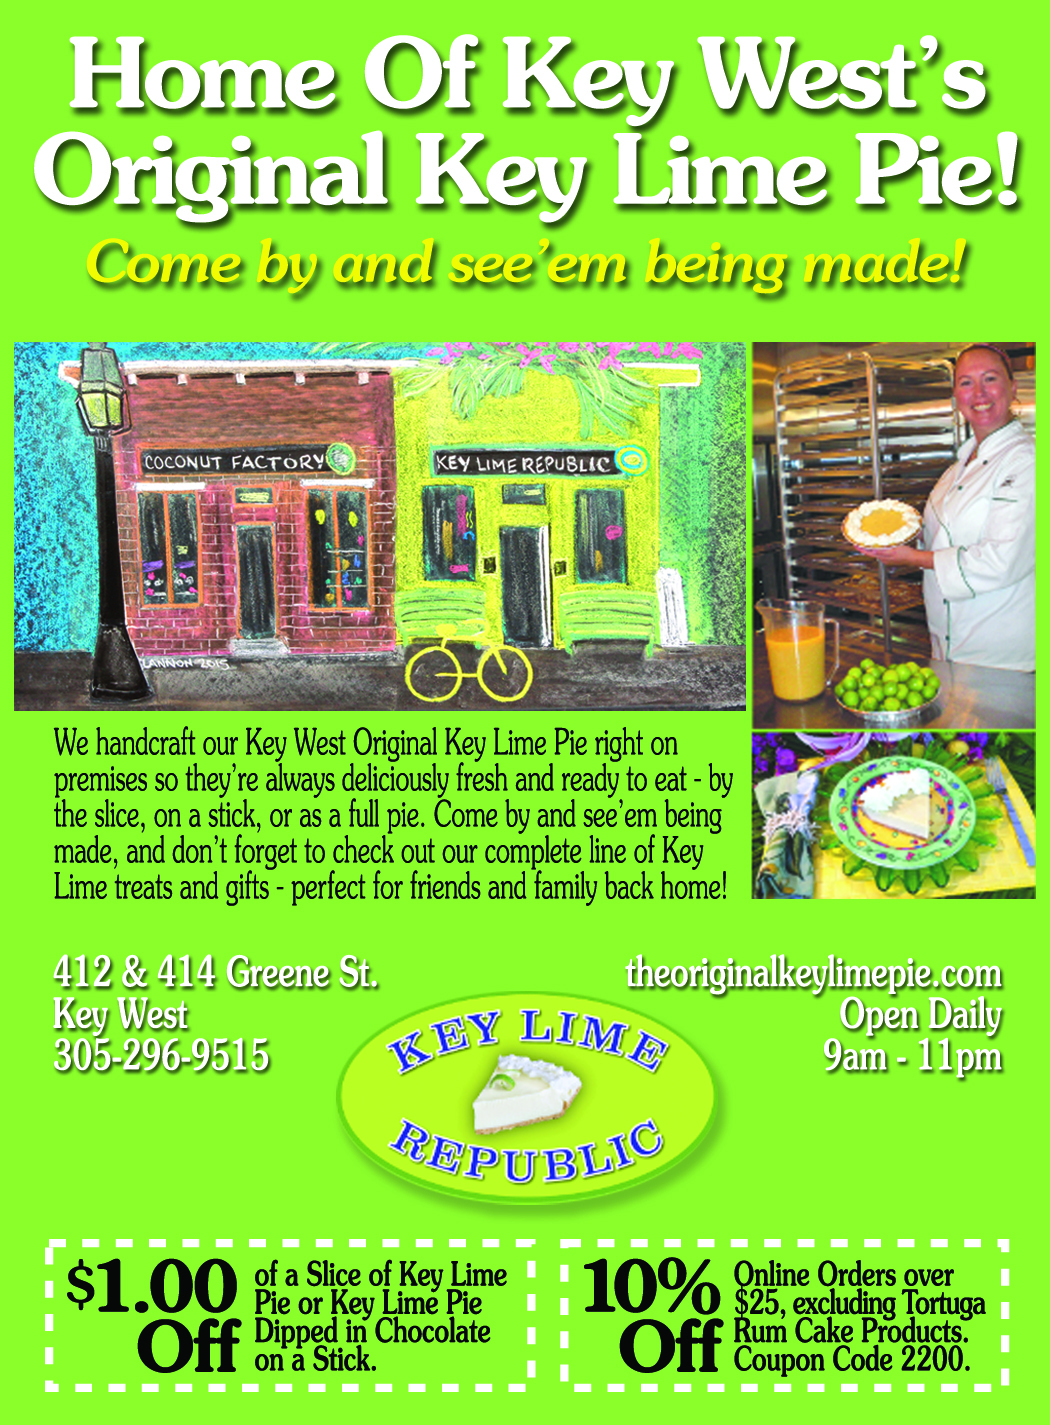 Key Lime Republic and Coconut Factory